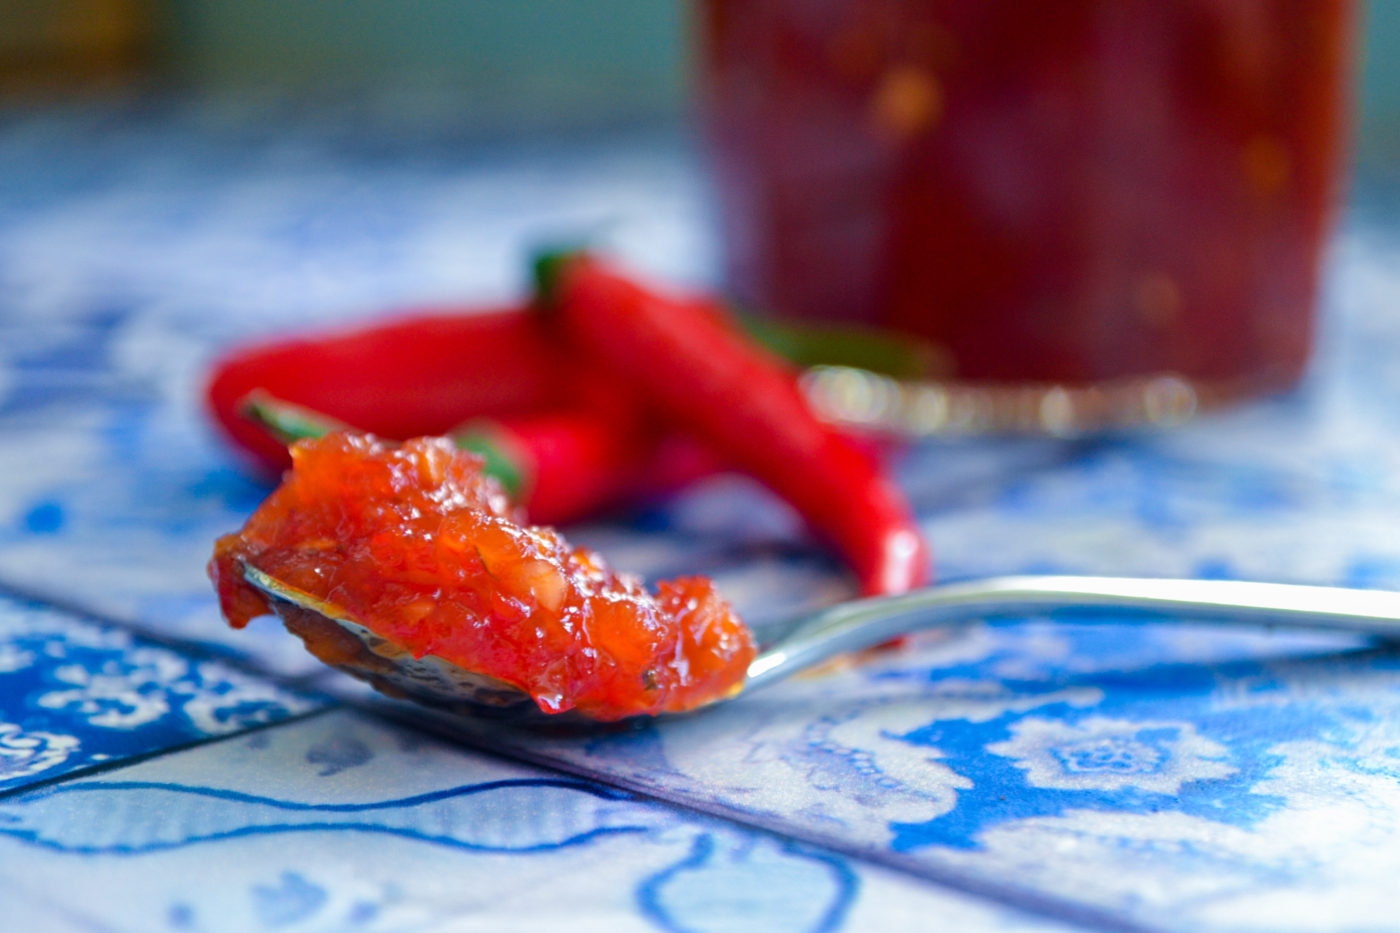 Spicy chilli jam recipe